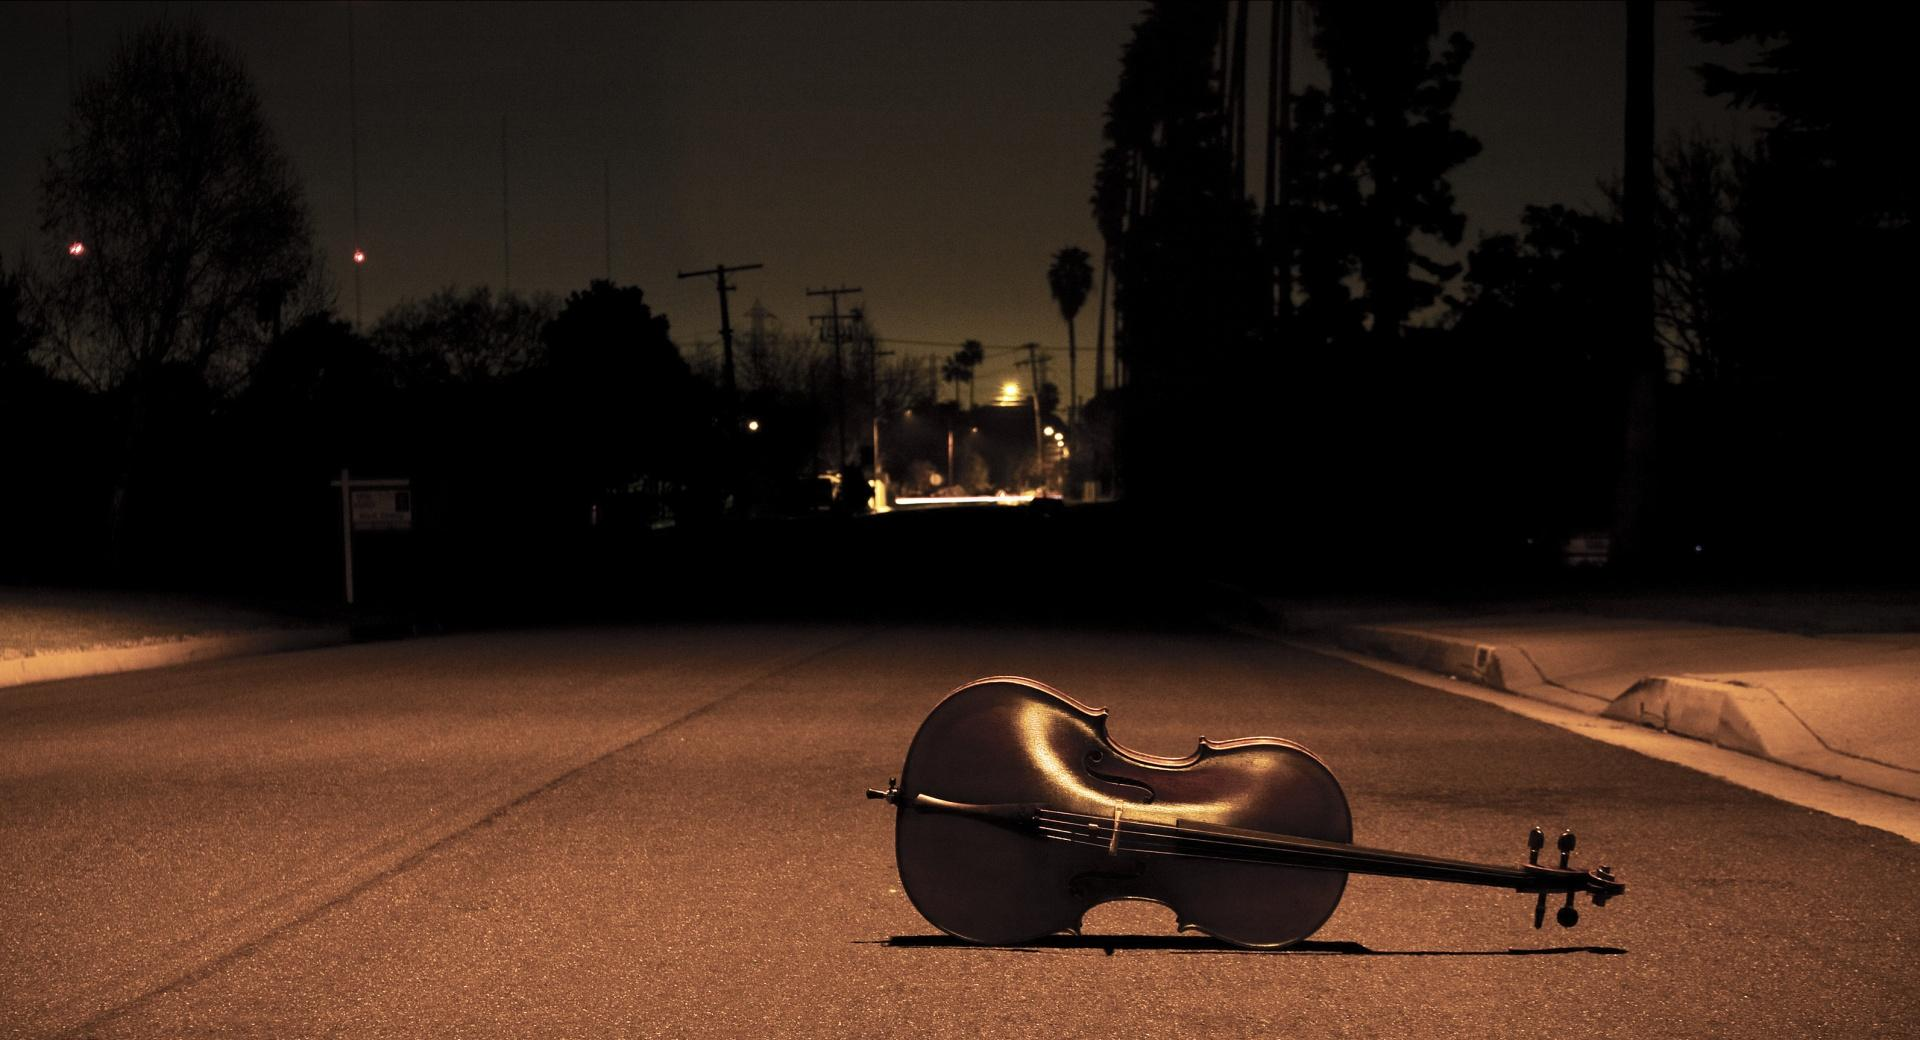 Cello On The Street wallpapers HD quality